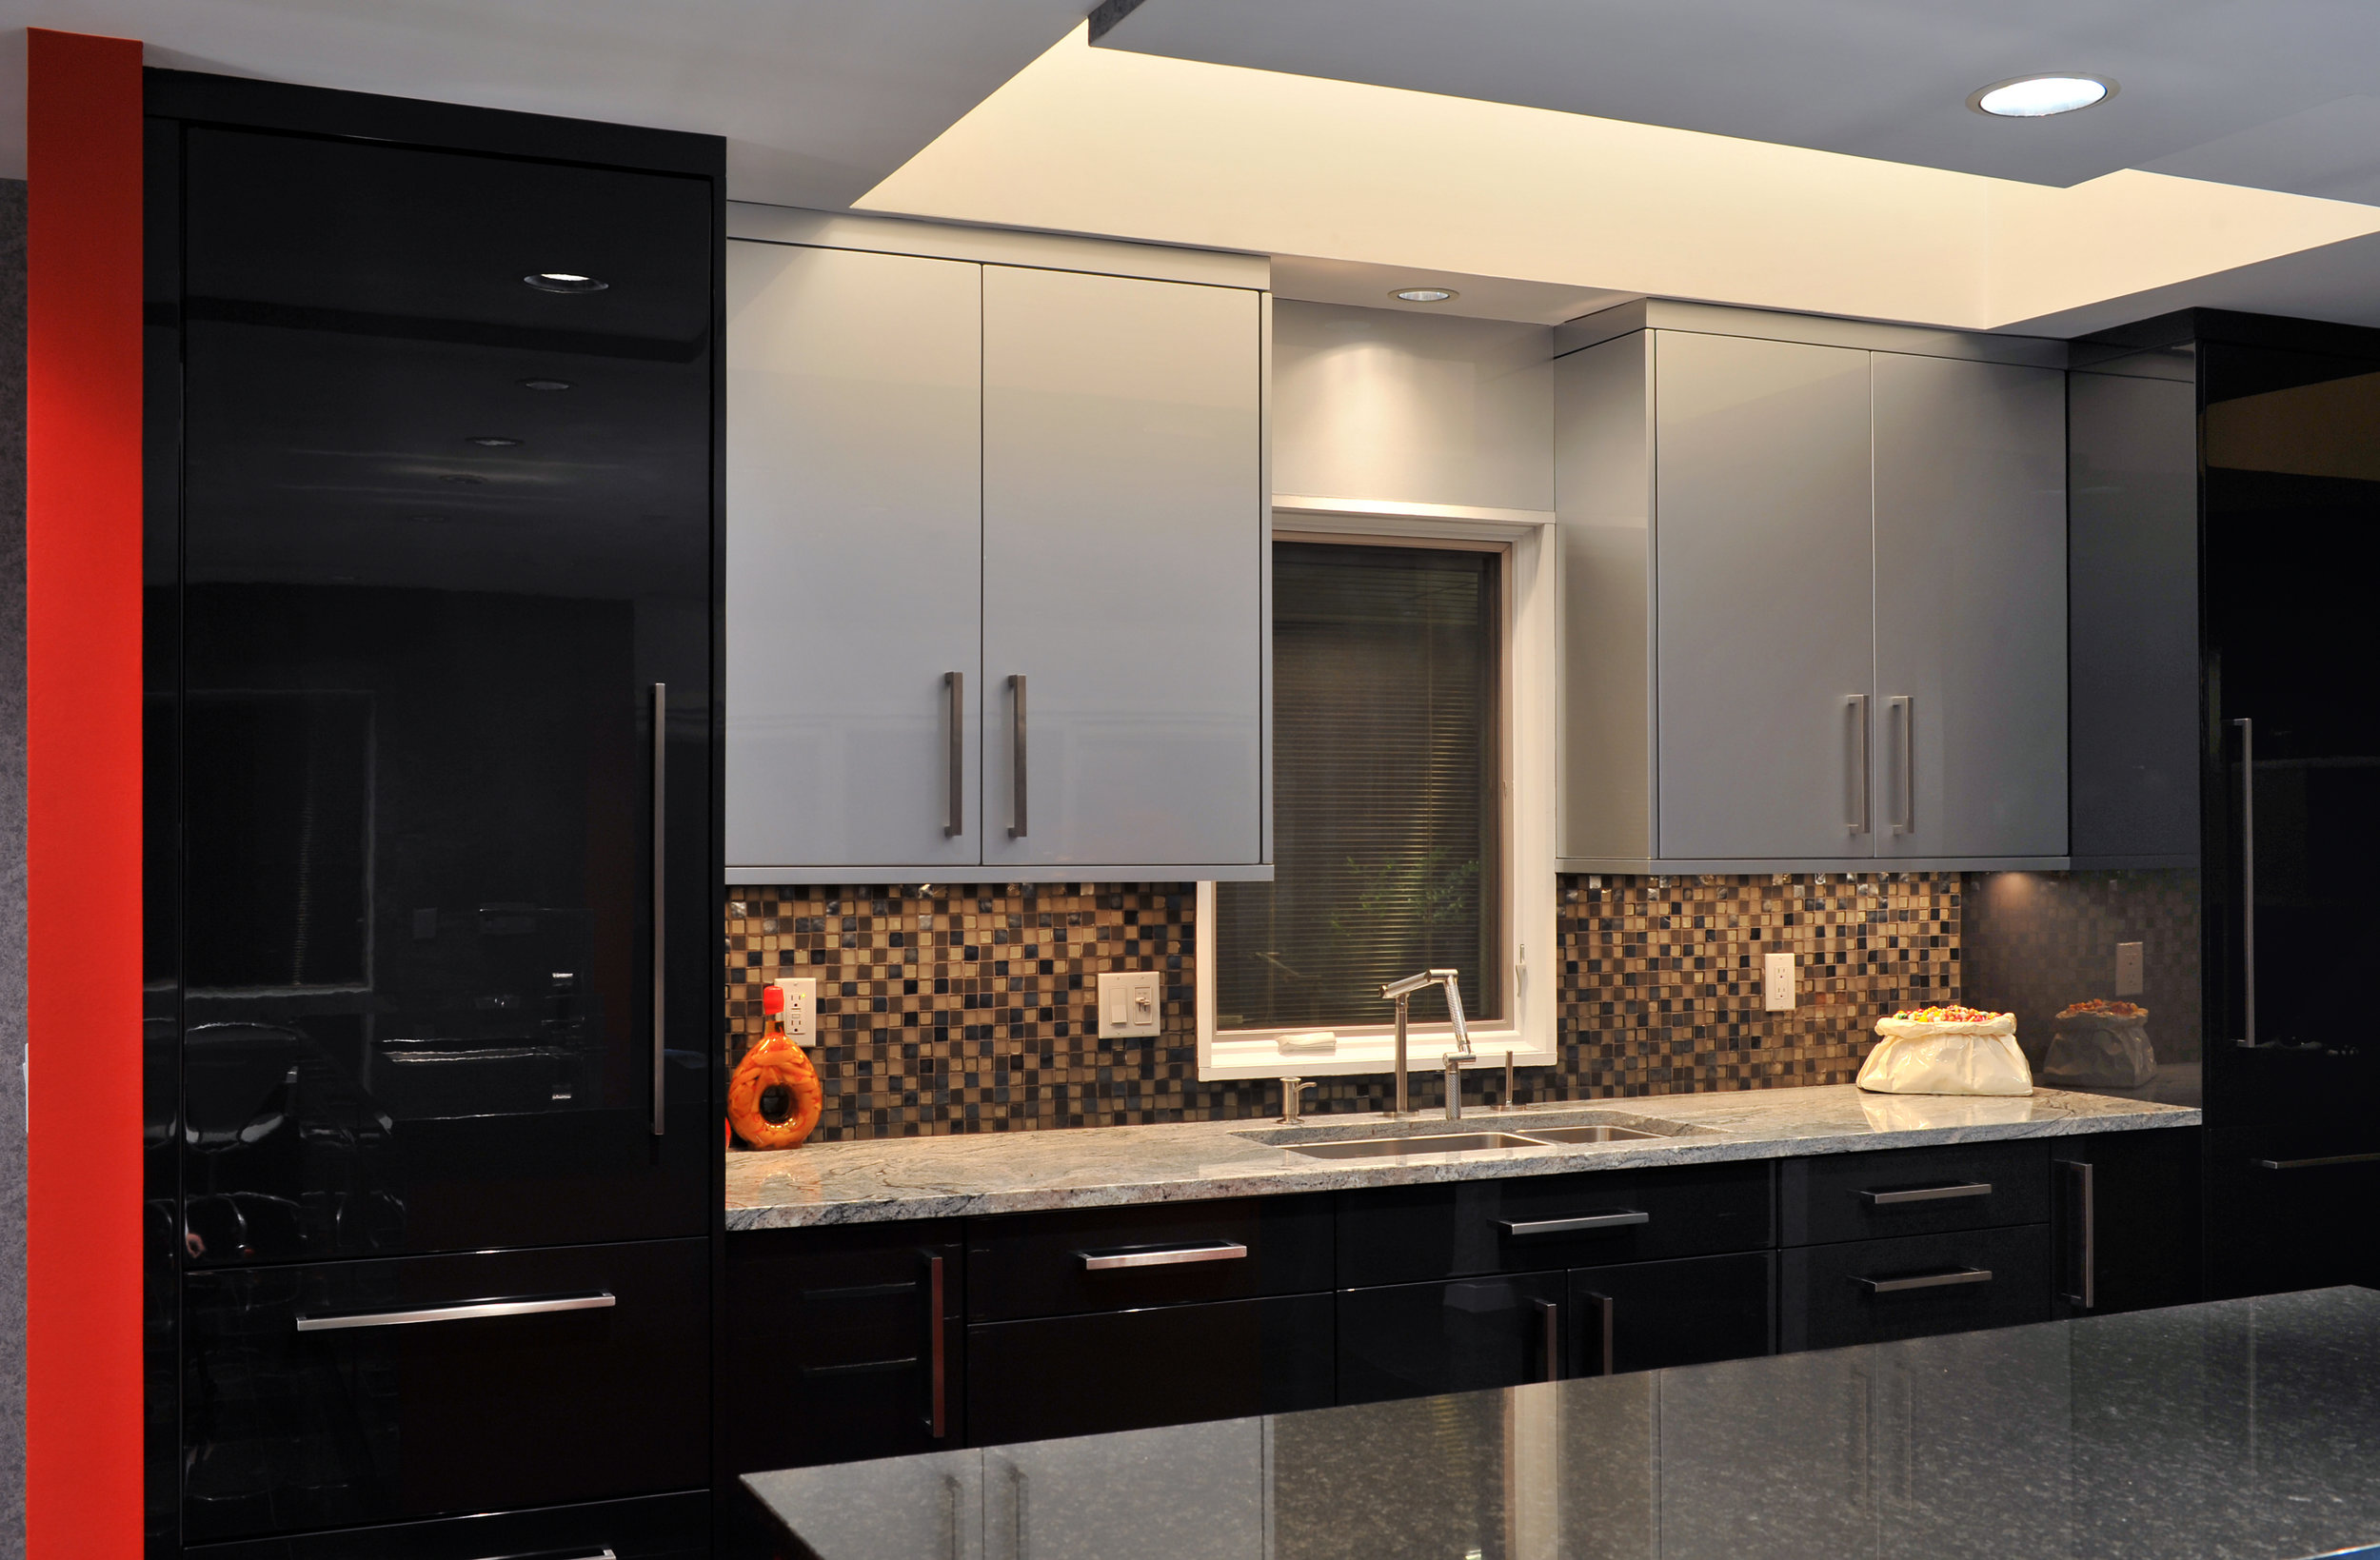 Contemporary style kitchen with upper cabinets and tiled backsplash